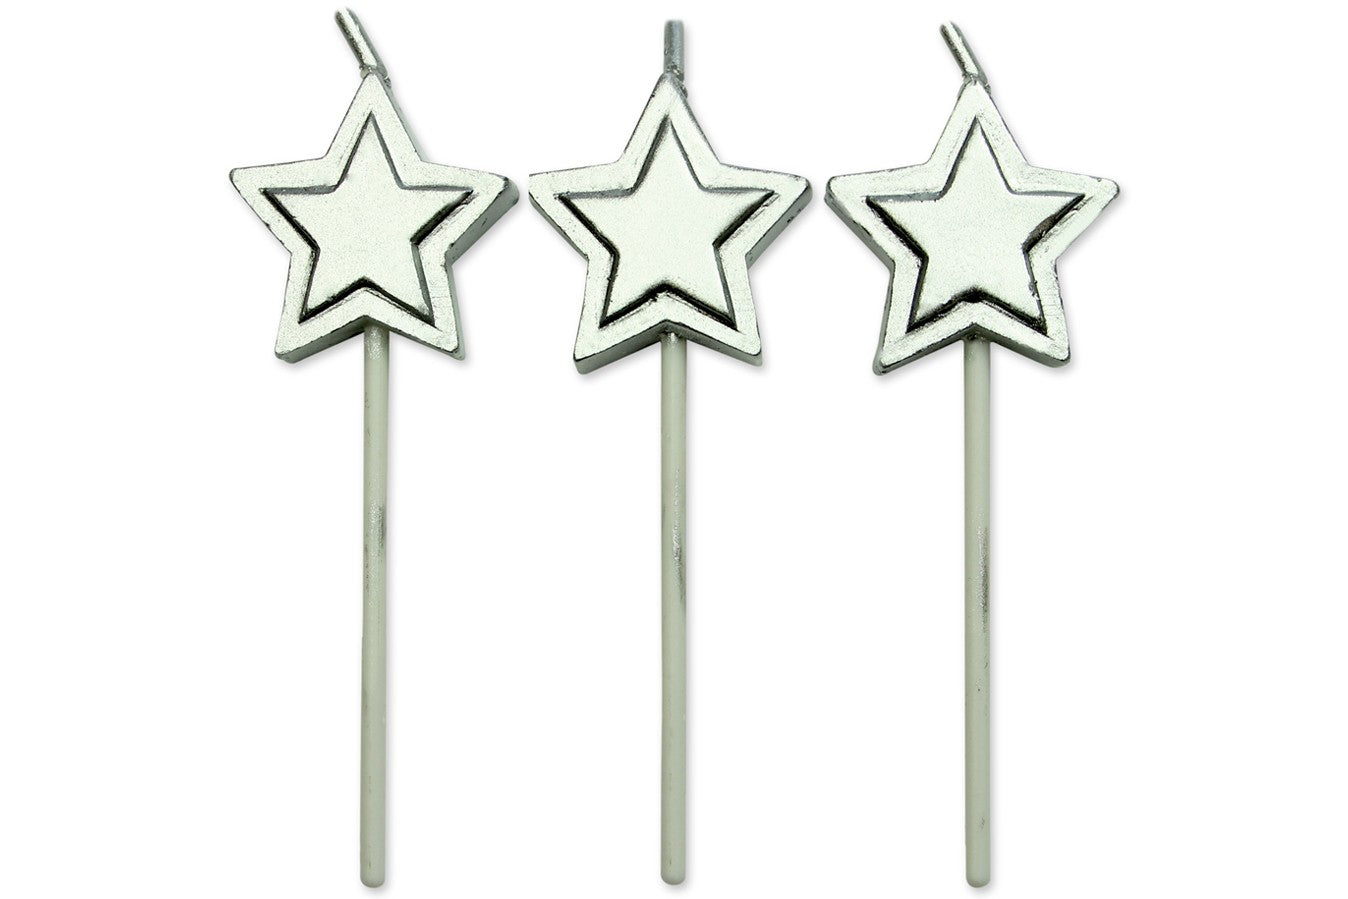 Silver Star Candles 8pk